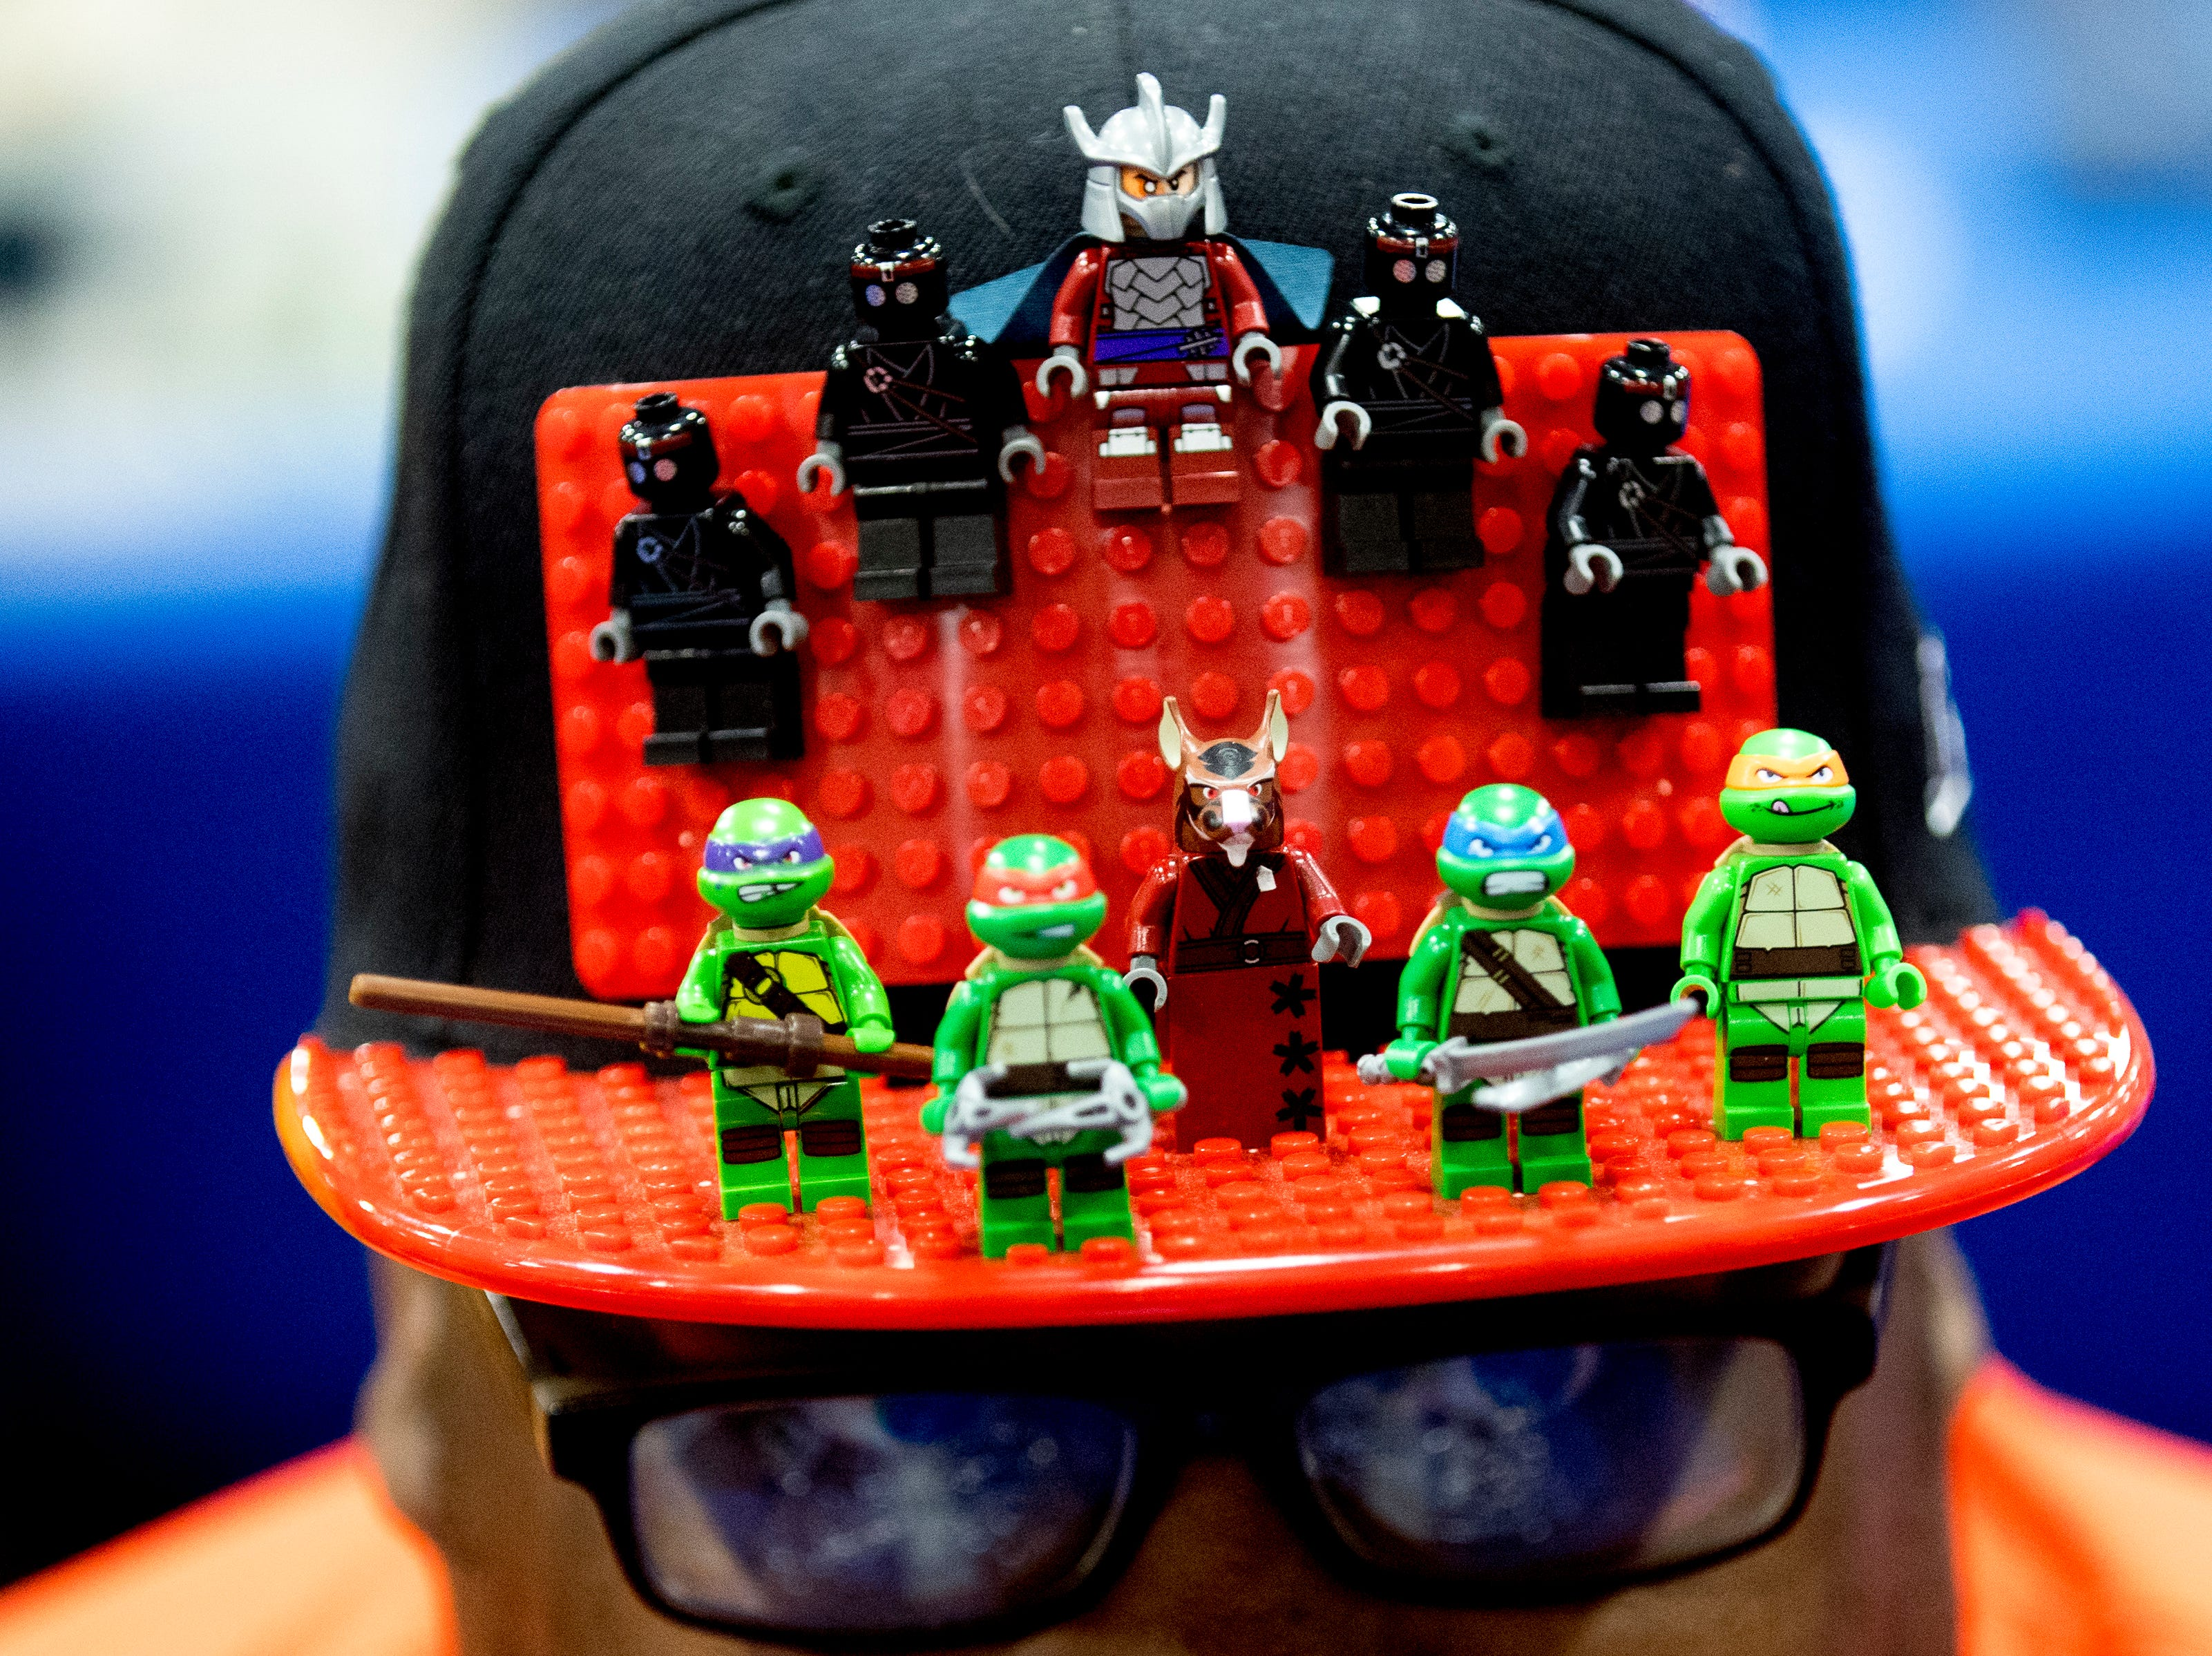 Tennessee Valley LEGO Club member Willie Neblett Jr., of Nashville, shows off his decorative cap at the BrickUniverse Knoxville LEGO Fan Expo in the Knoxville Convention Center in Knoxville, Tennessee on Saturday, August 25, 2018. Life-sized LEGO displays, over 40 world landmarks build to-scale from LEGO as well as castles, trains, and cities and other creations were on display.